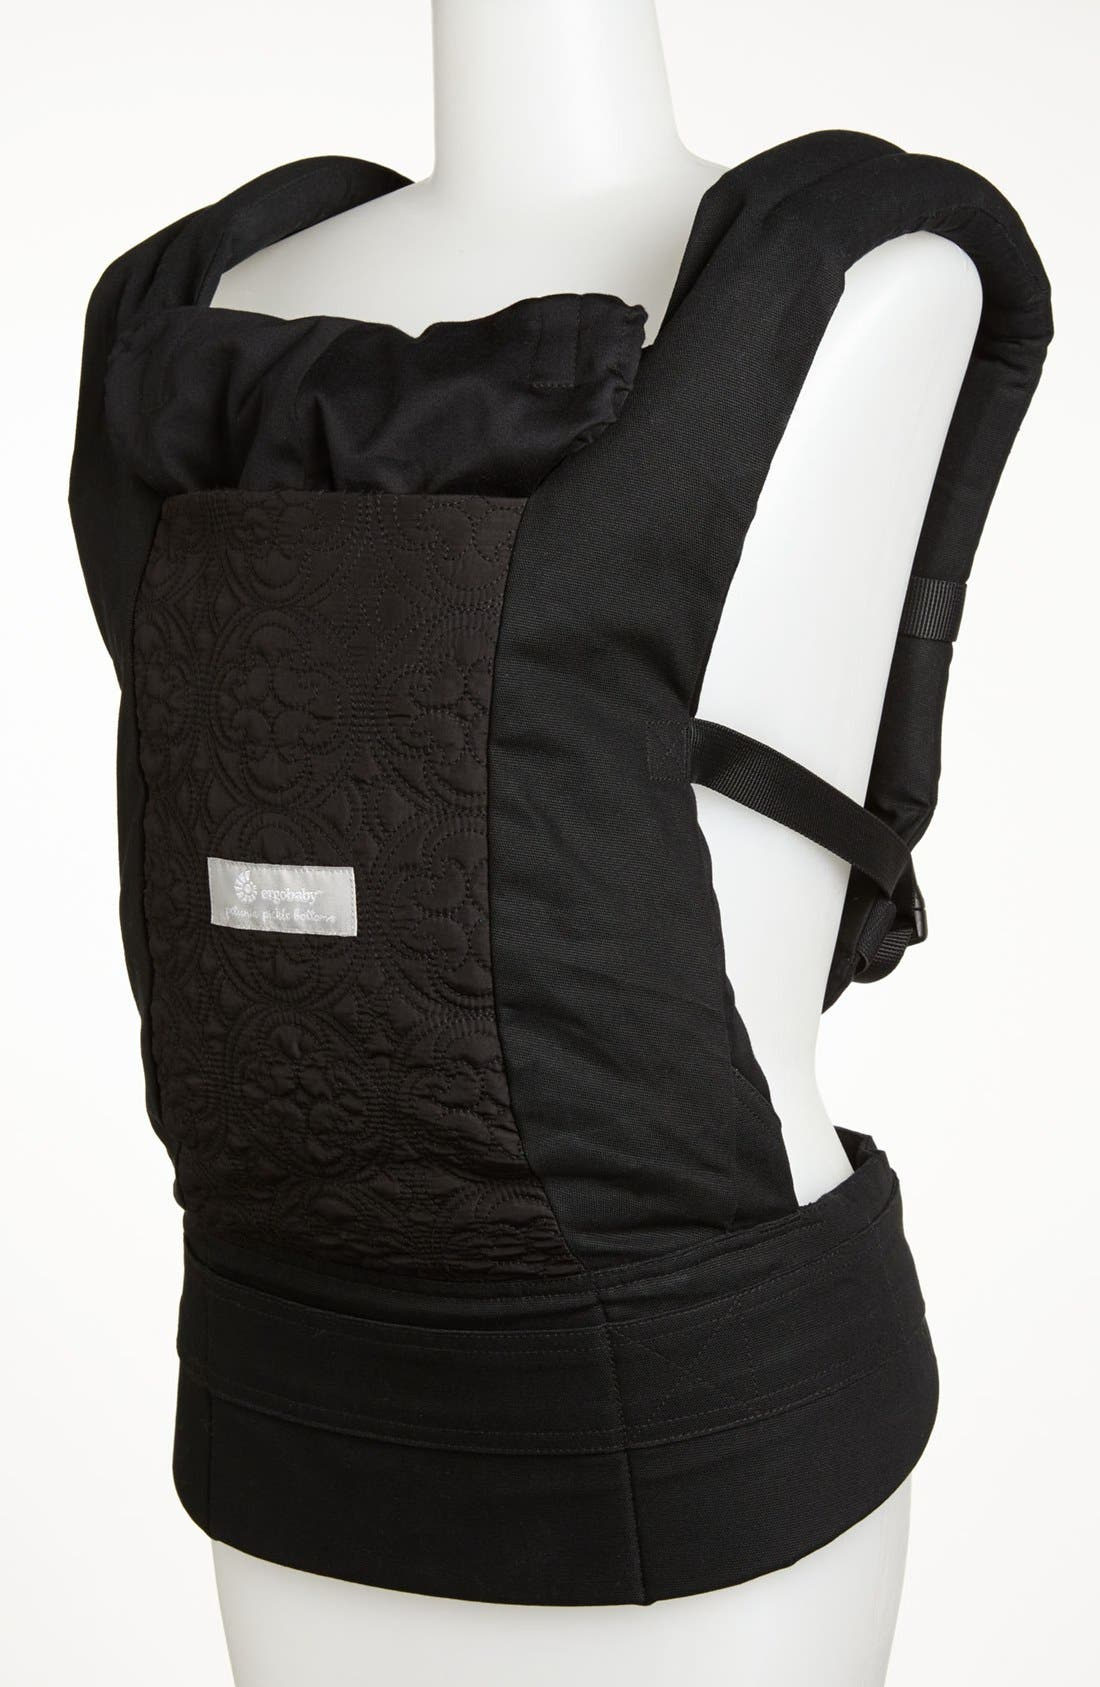 Alternate Image 1 Selected - ERGObaby Baby Carrier with Petunia Pickle Bottom Print (Nordstrom Exclusive)